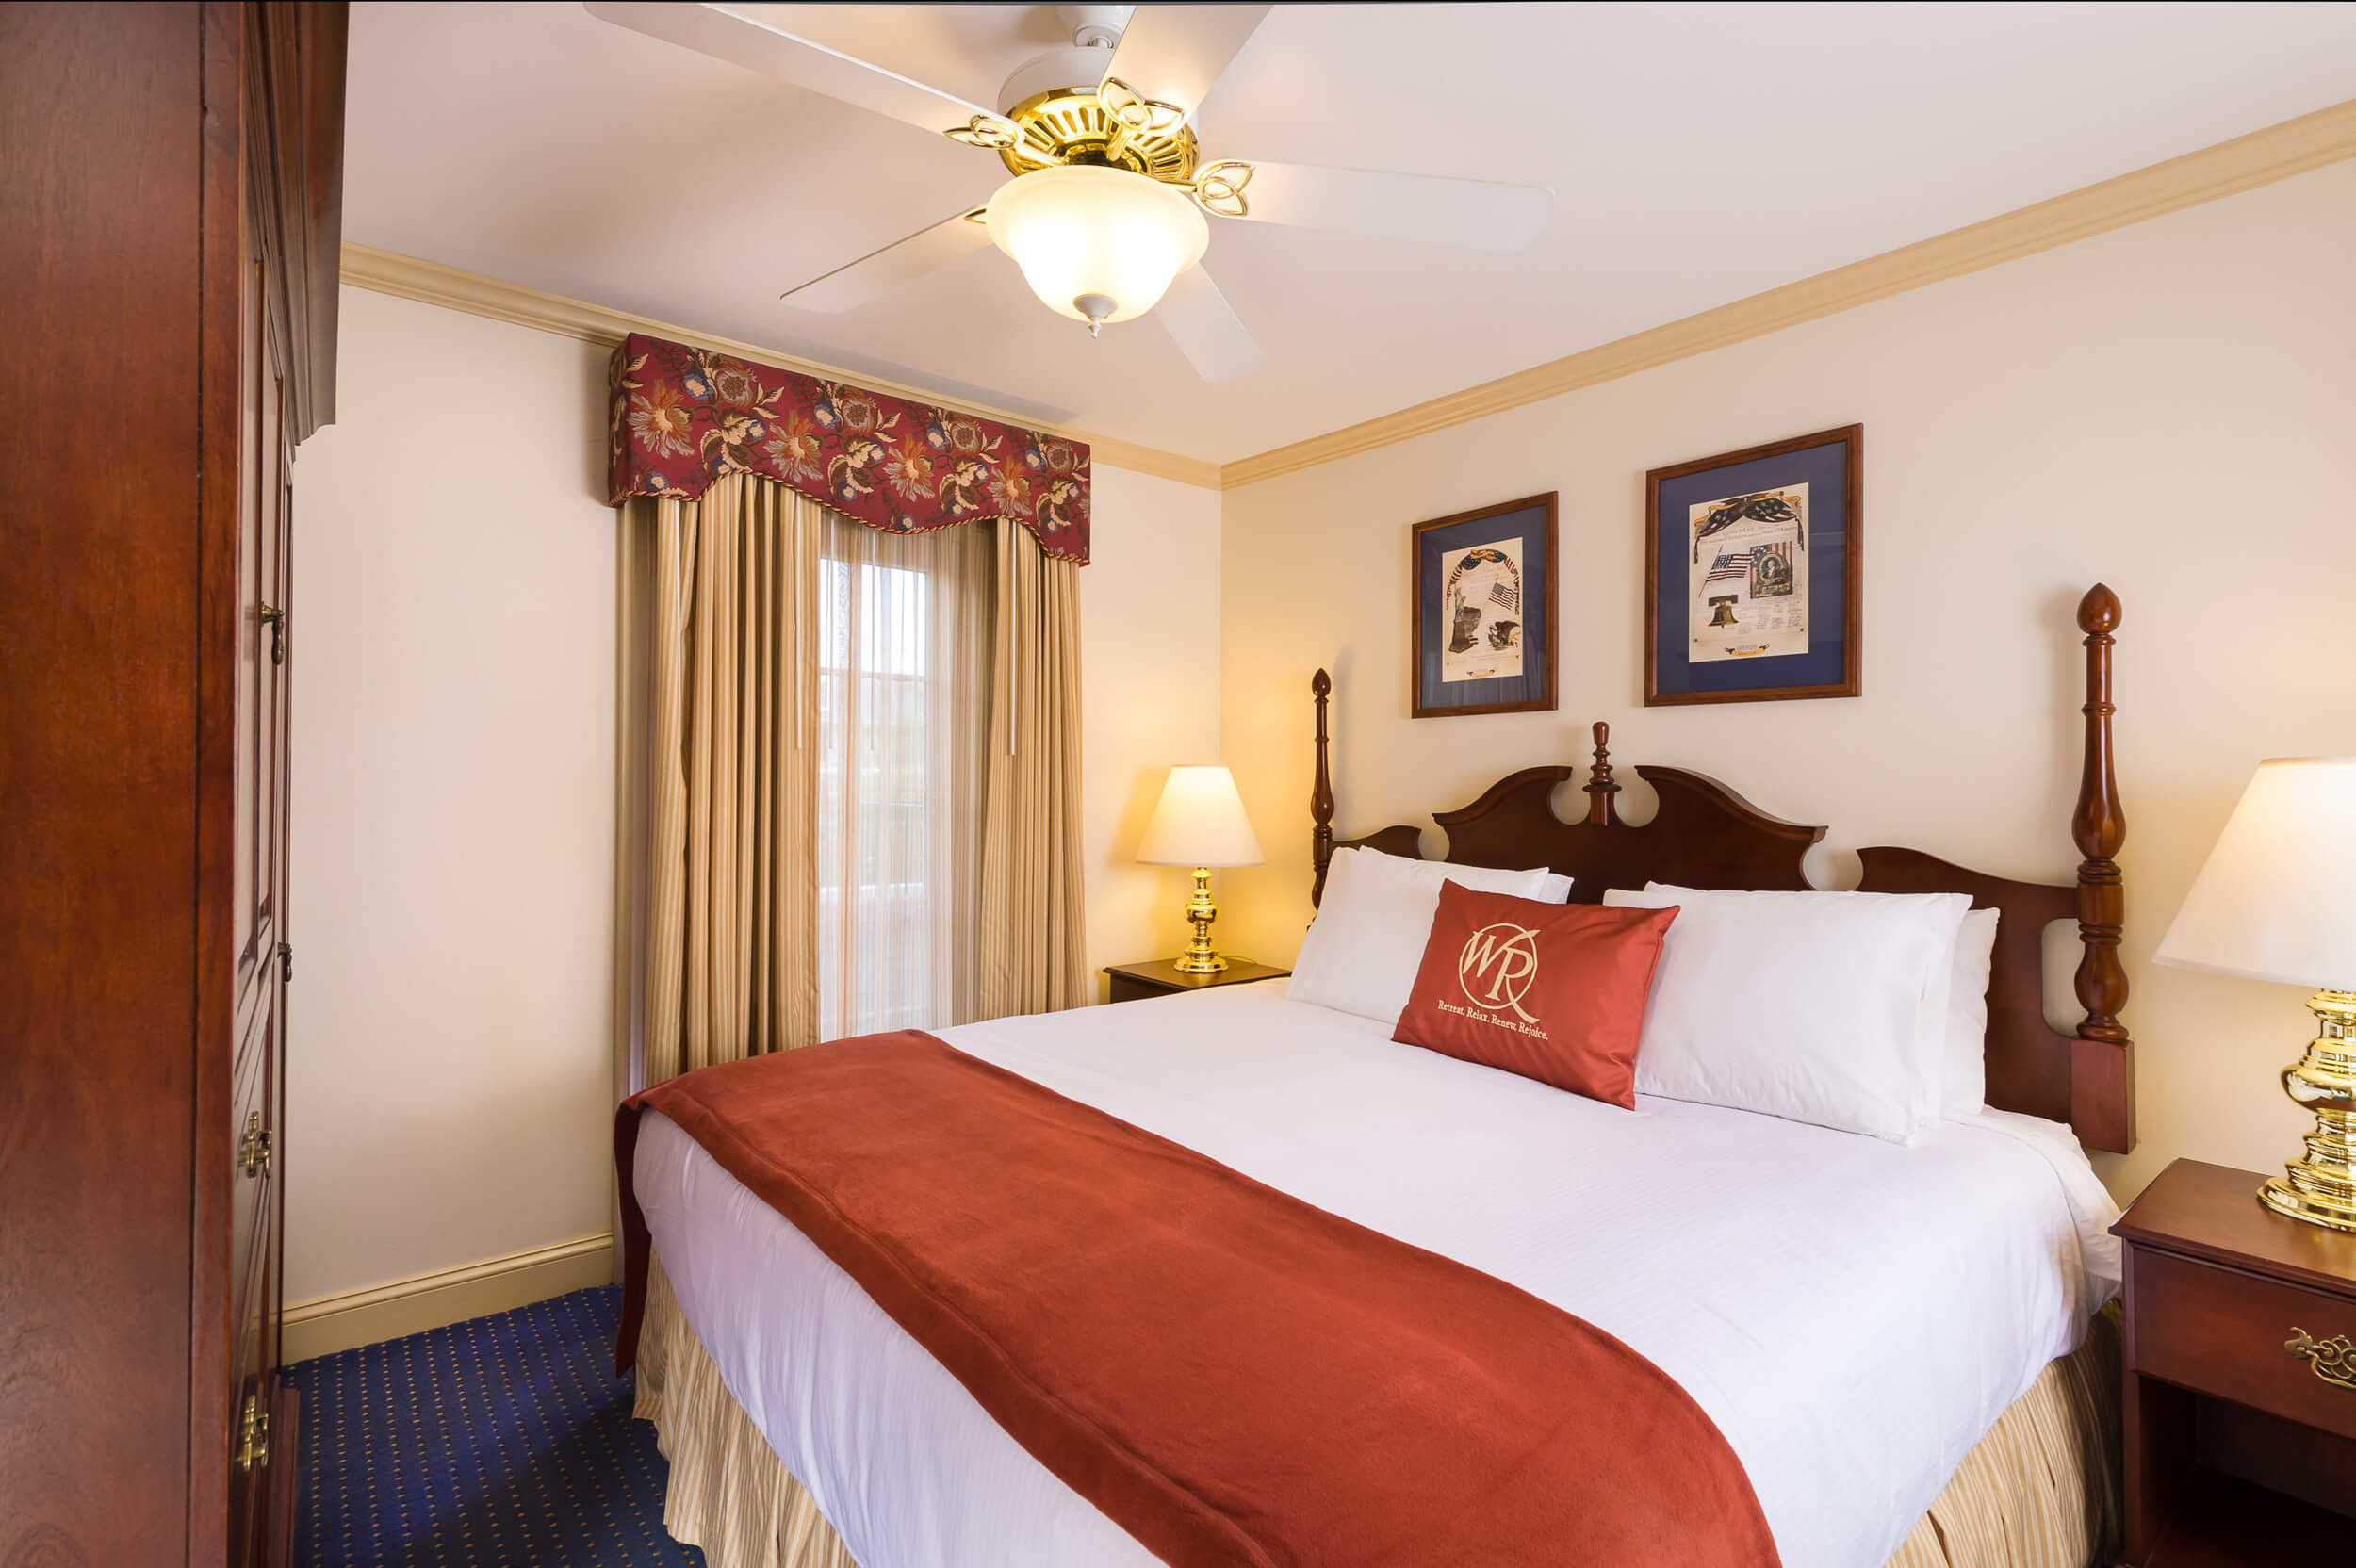 King Bed in One-Bedroom Villa | Westgate Historic Williamsburg Resort